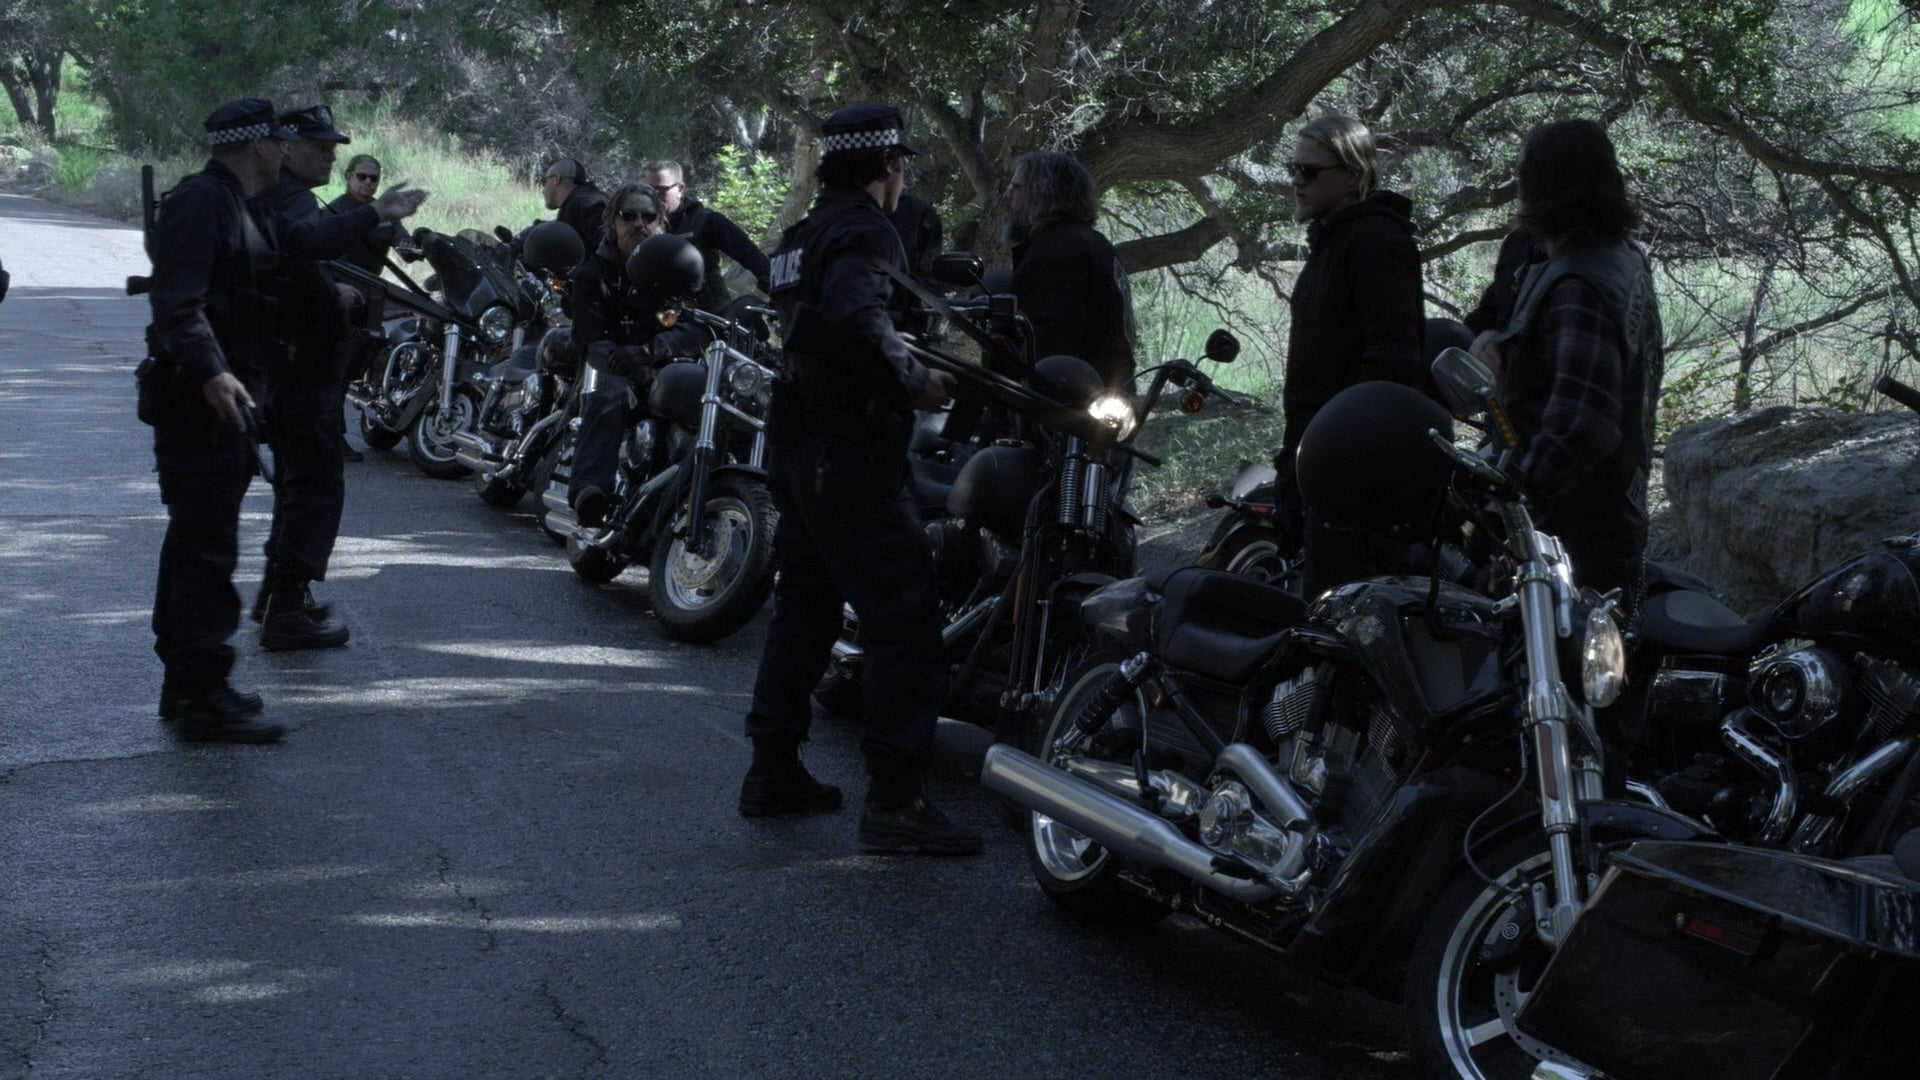 soa episode guide season 3